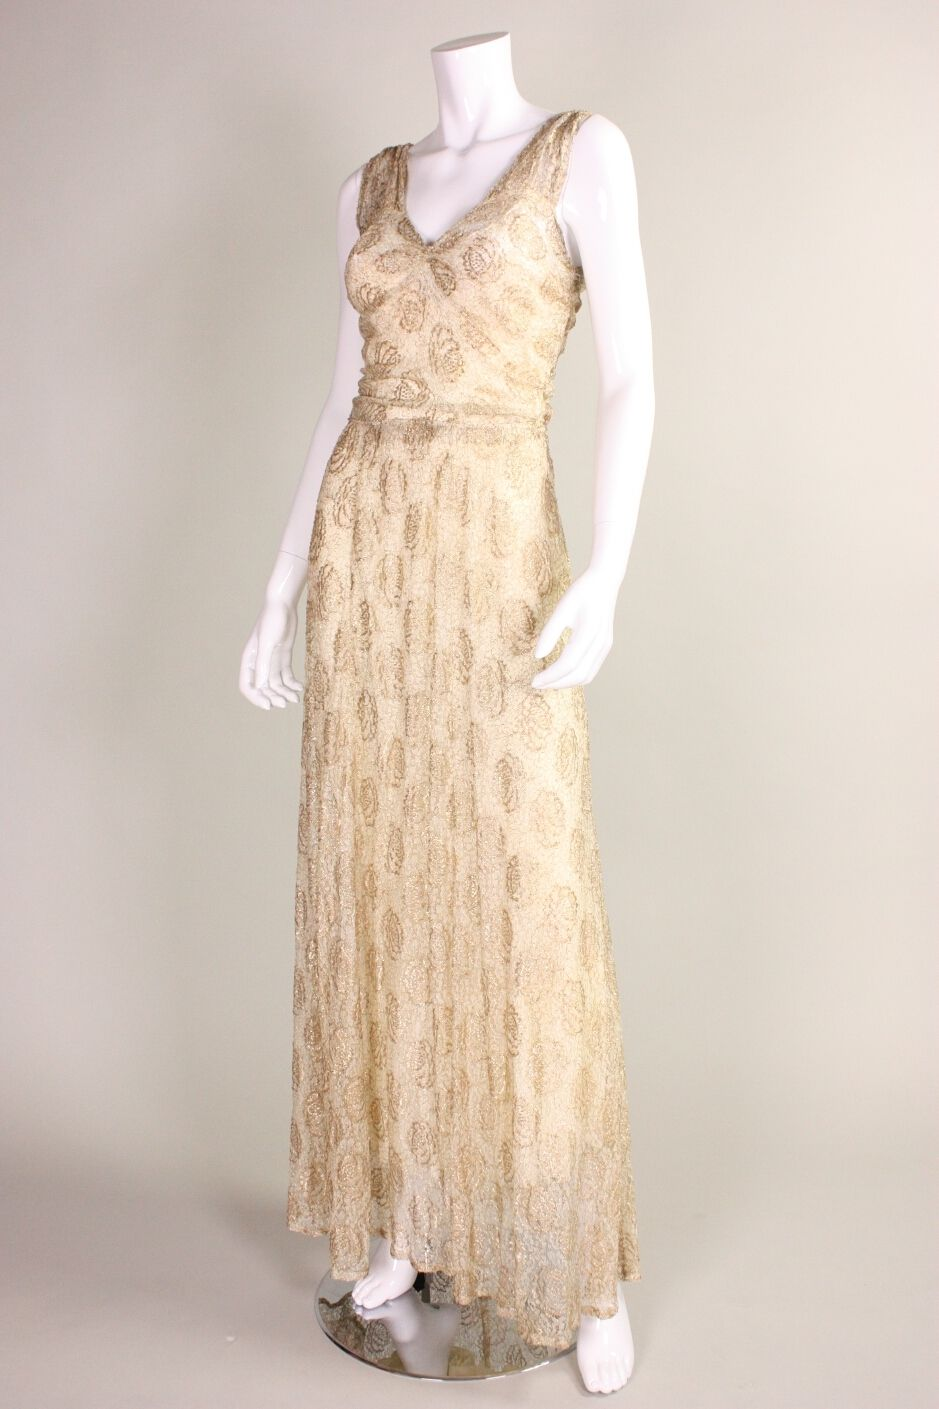 1920 lace dress  s Dress  s Gold Lamé Embroidered Deco Flapper Dress  Ruched